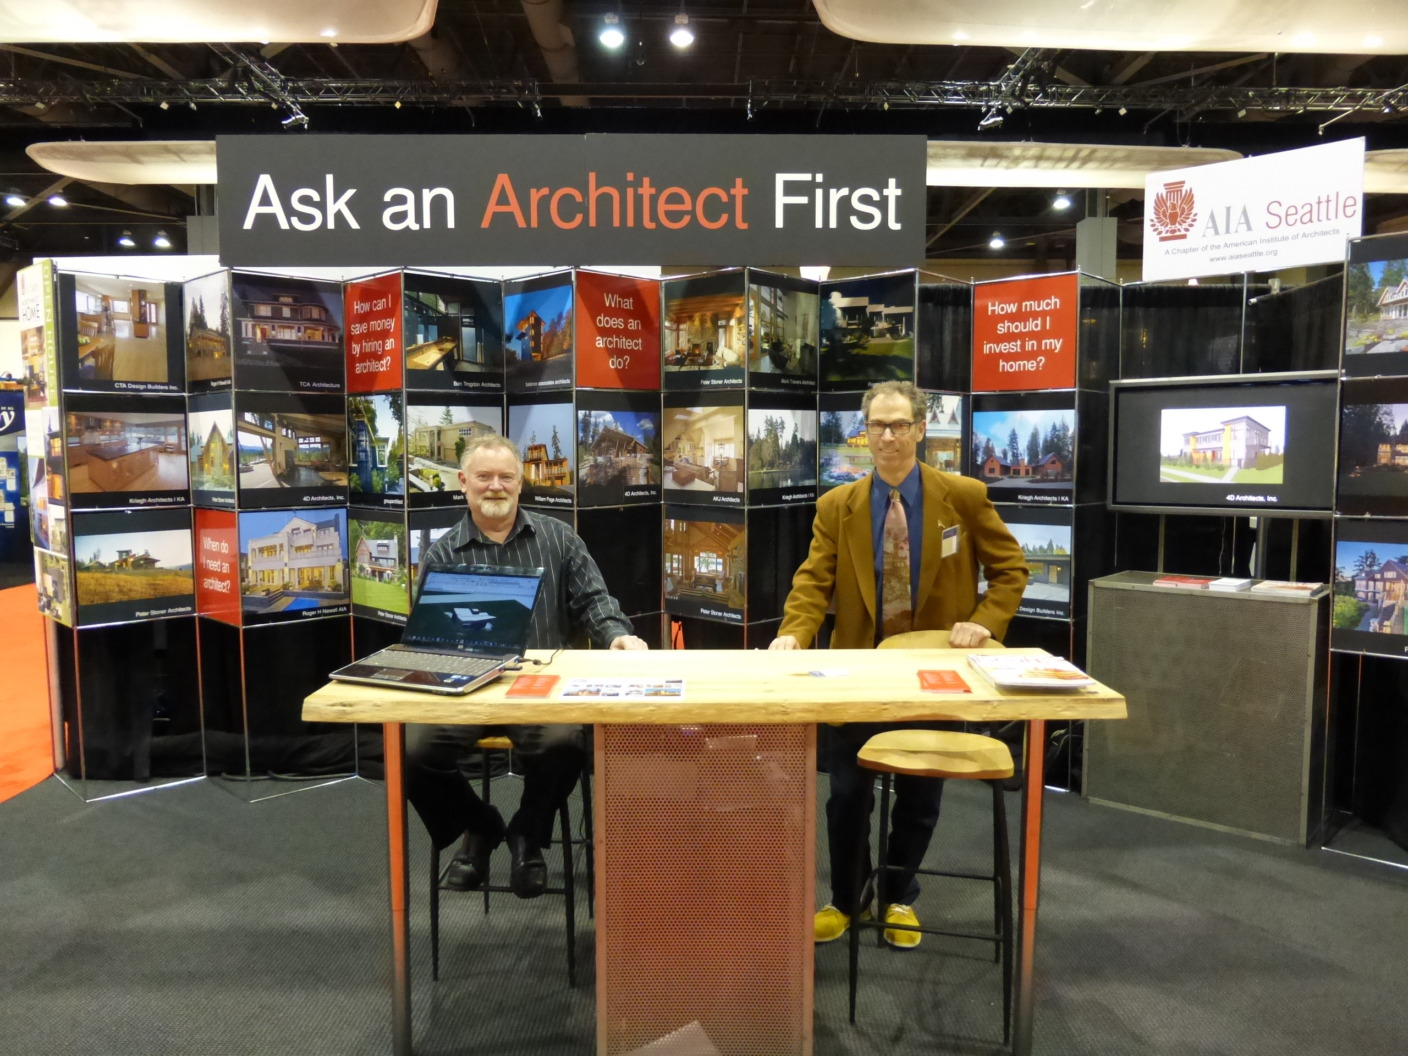 AIA Seattle invites Member Firms to exhibit their work and host the AIA Seattle booth at the 2018 Seattle Home Show.